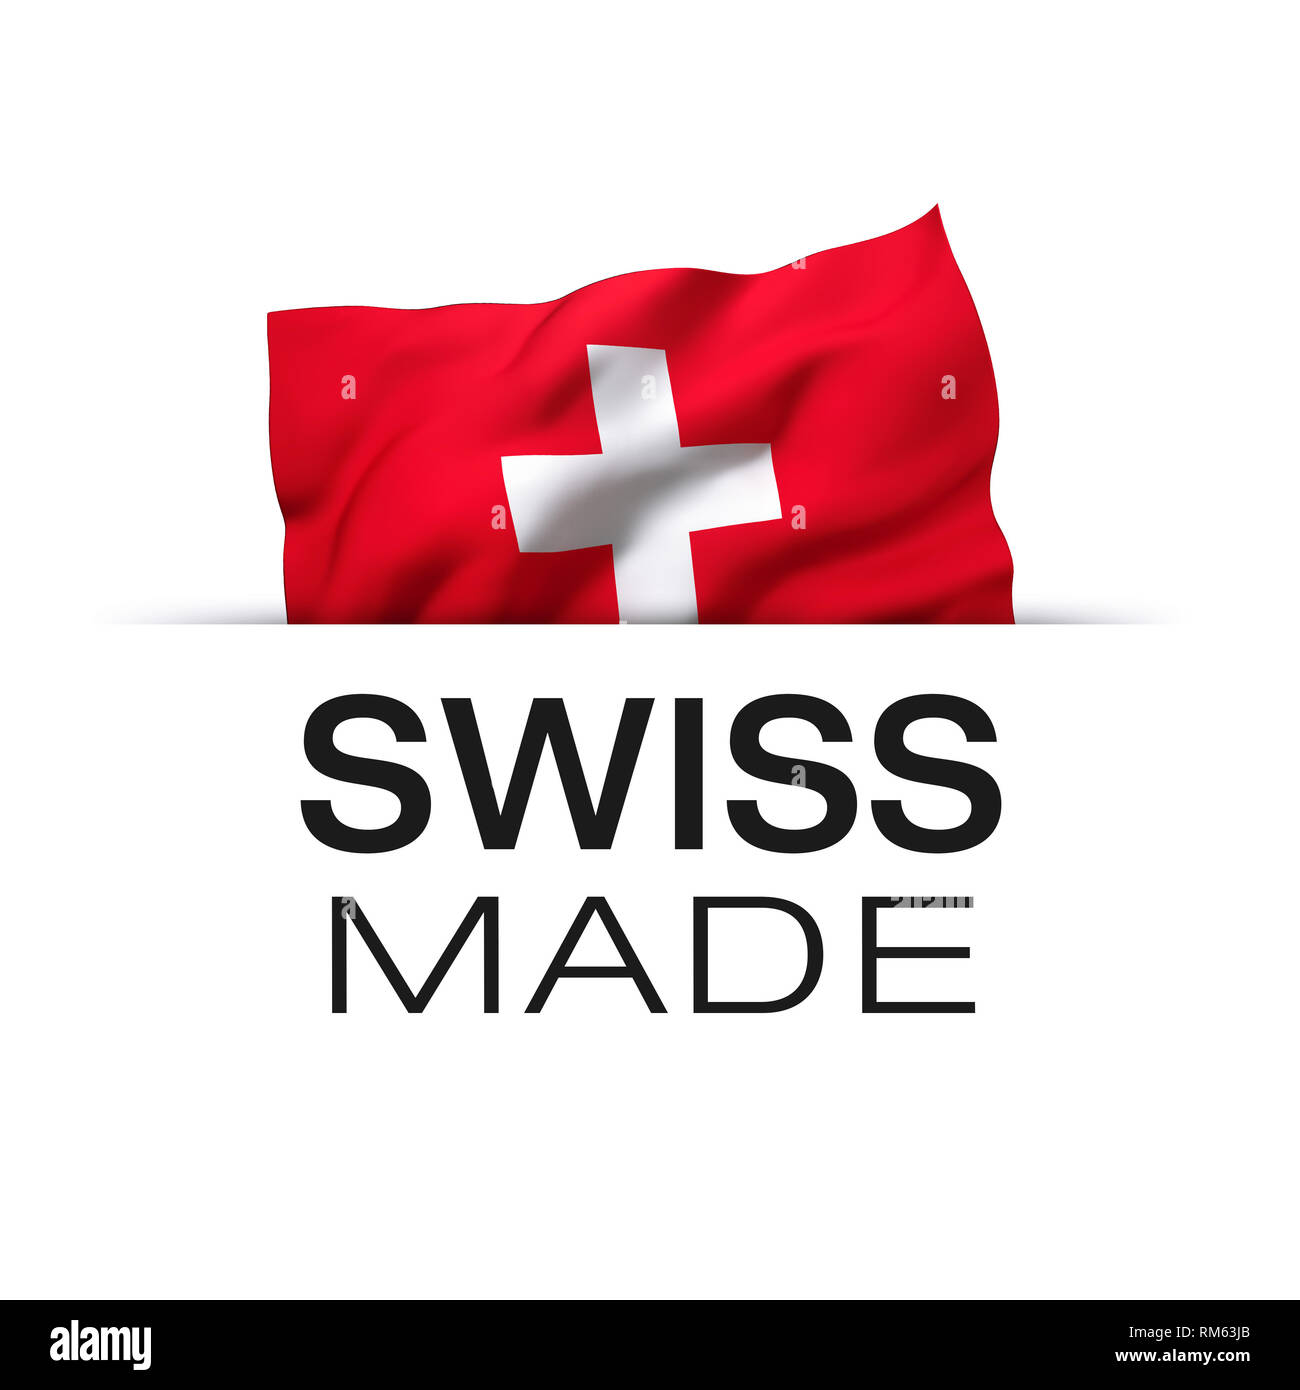 Swiss made - Guarantee label with a waving flag of Switzerland. - Stock Image